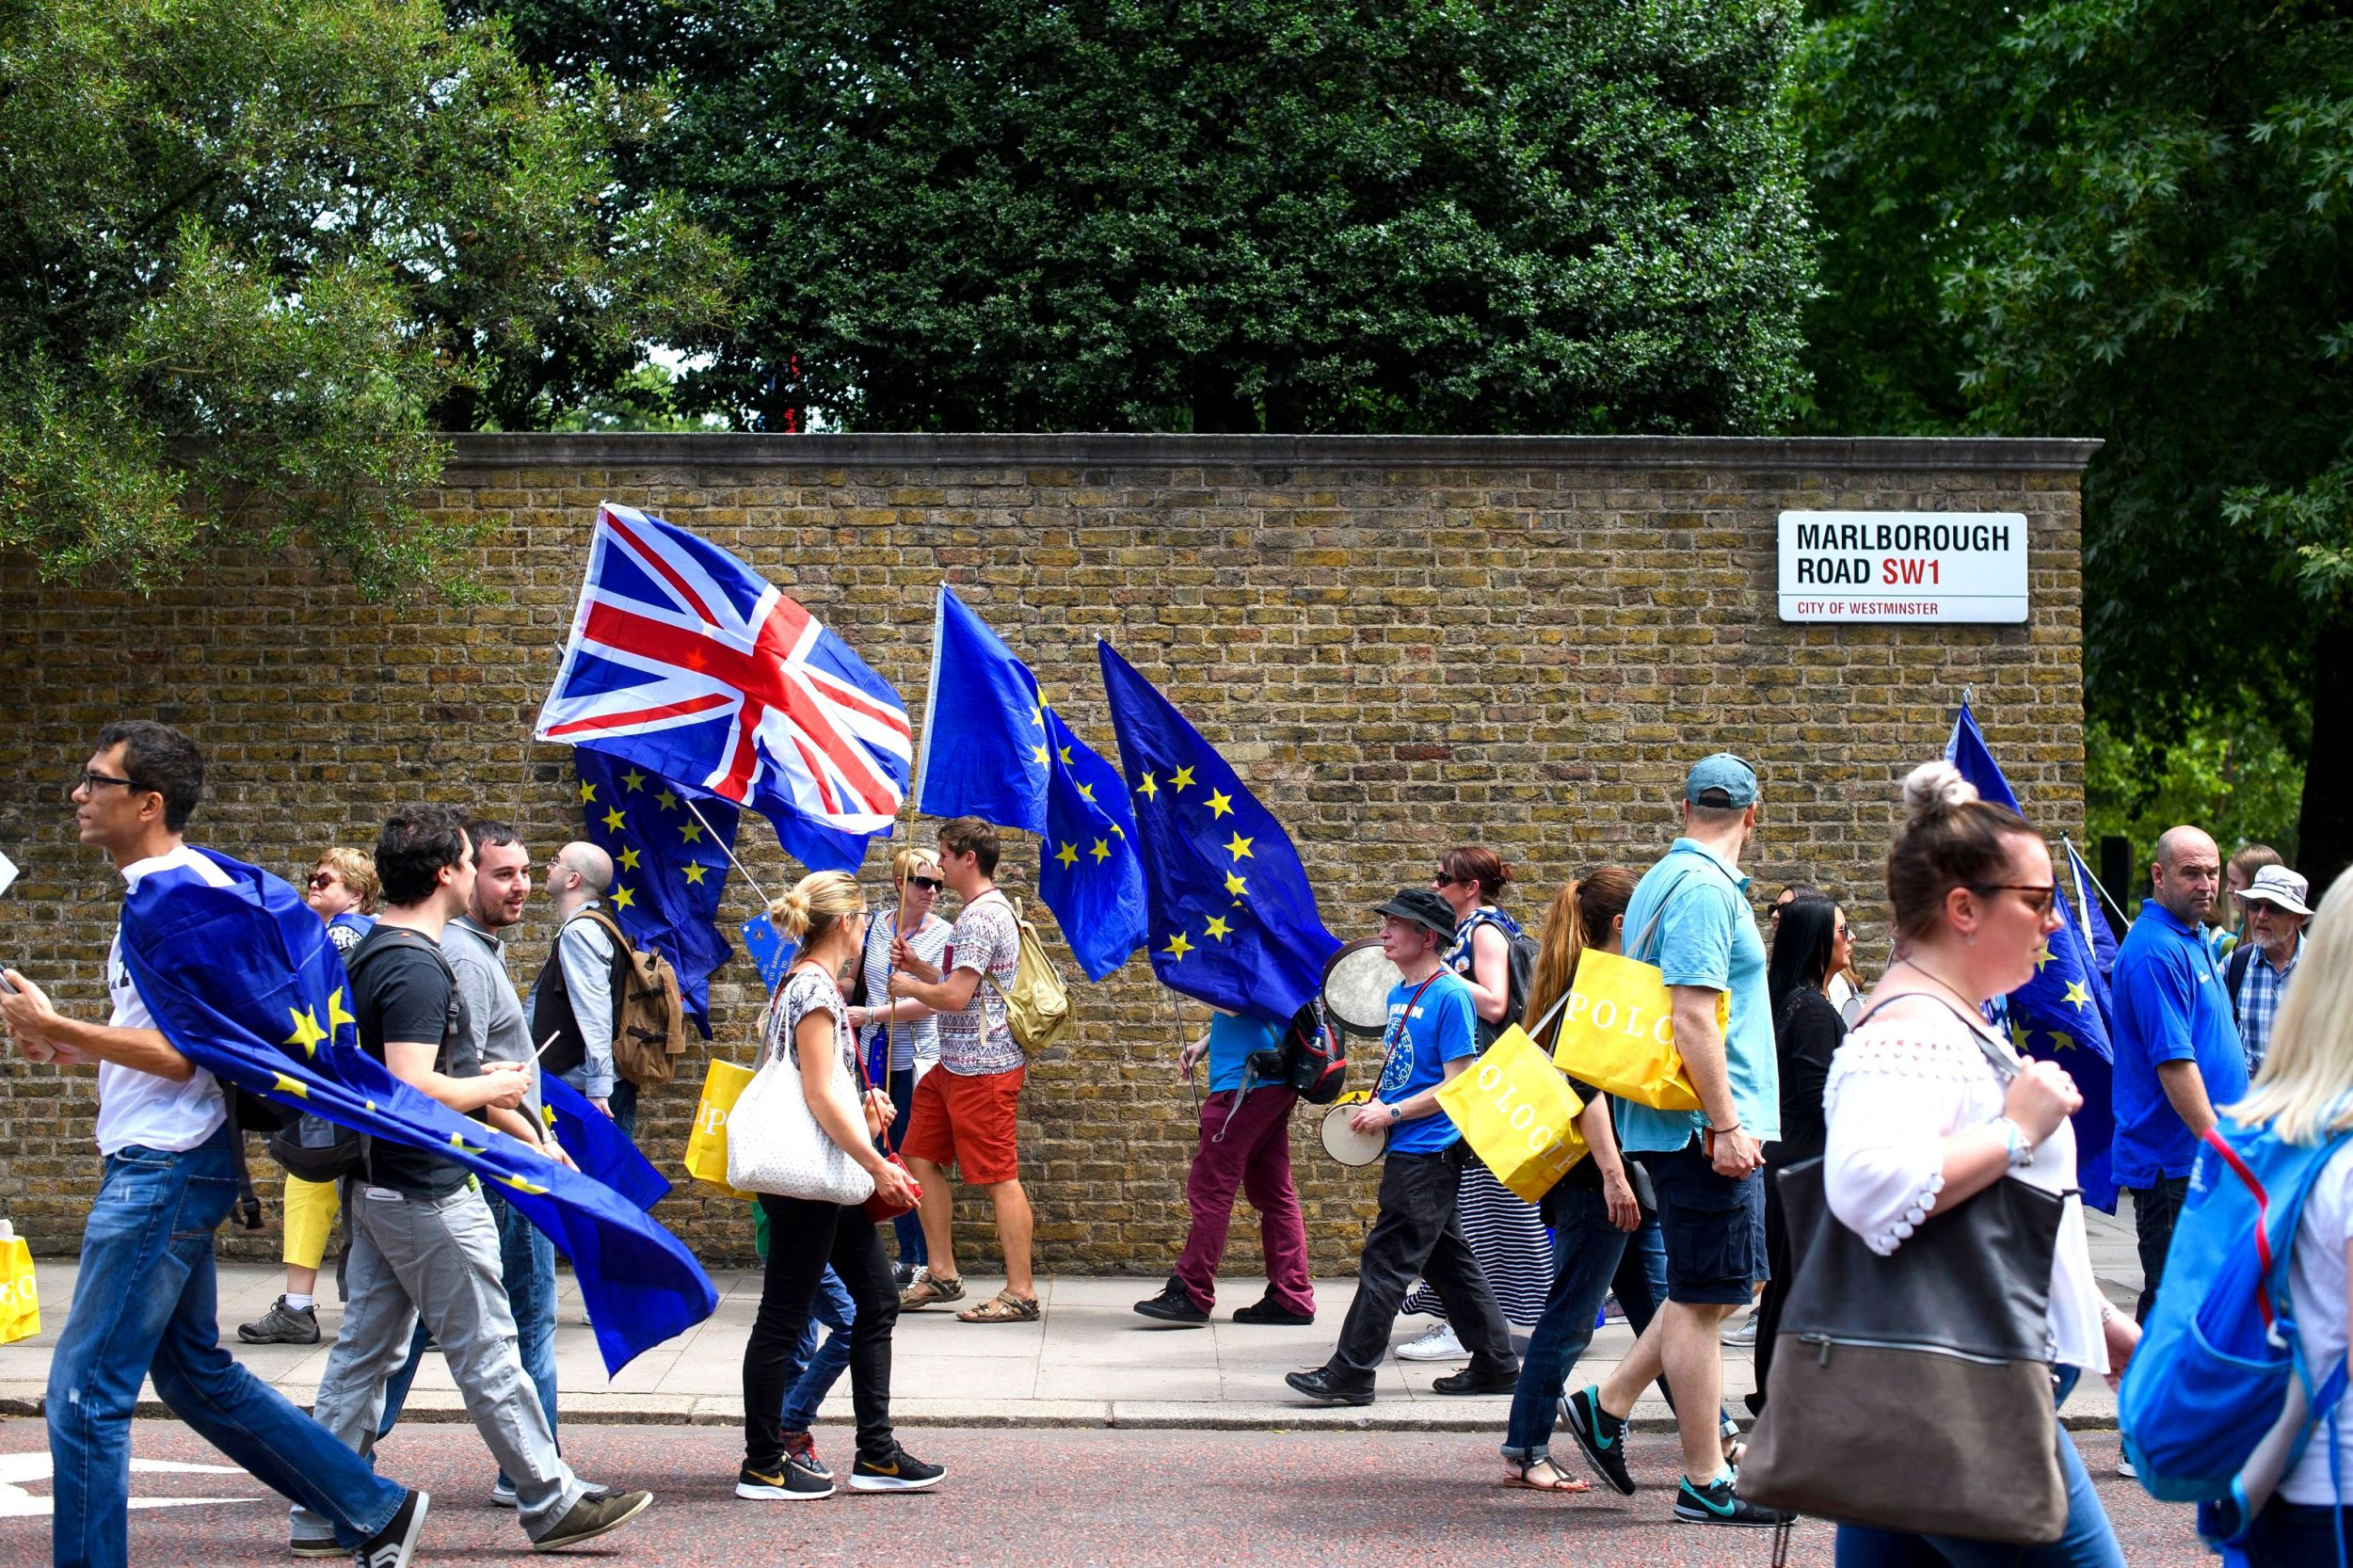 Mandatory Credit: Photo by Ben Cawthra/REX/Shutterstock (9725758a) Thousands of anti Brexit demonstrators take part in The People's Vote march for a second EU referendum in central London, on the second anniversary of the EU referendum. People's March for a People's Vote, London, UK - 23 Jun 2018